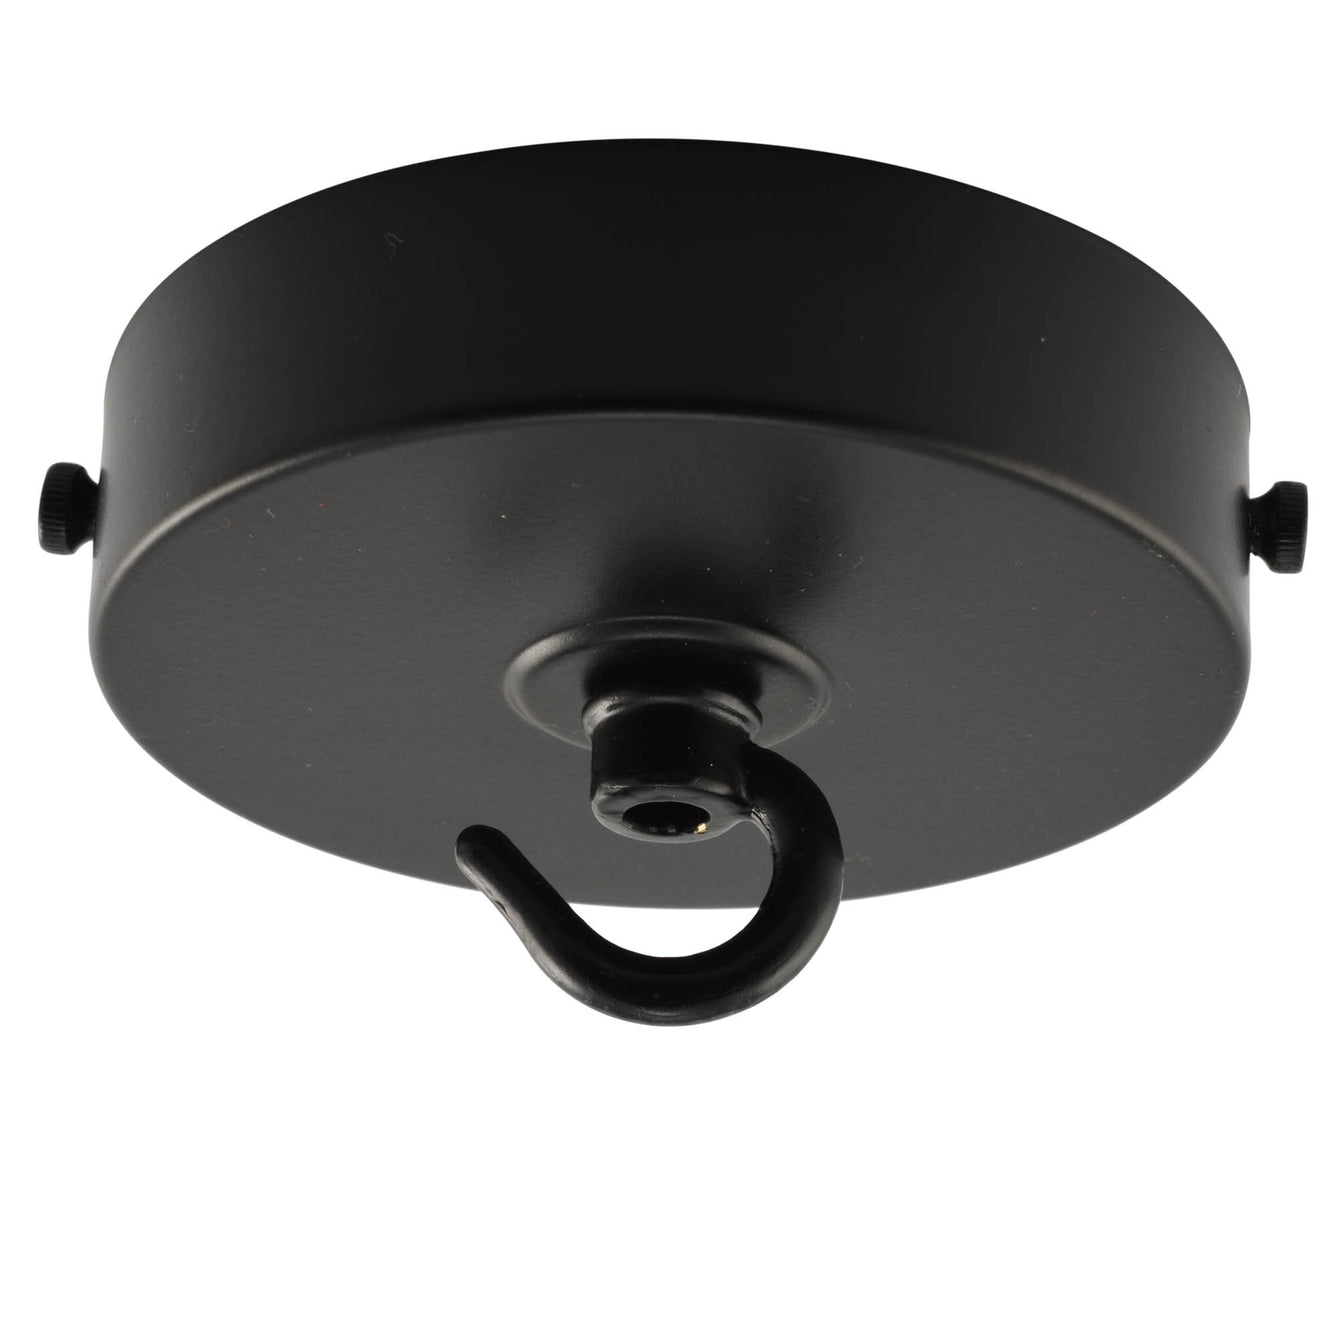 ElekTek 100mm Diameter Flat Top Ceiling Rose with Strap Bracket and Hook Metallic Finishes Powder Coated Colours - Buy It Better